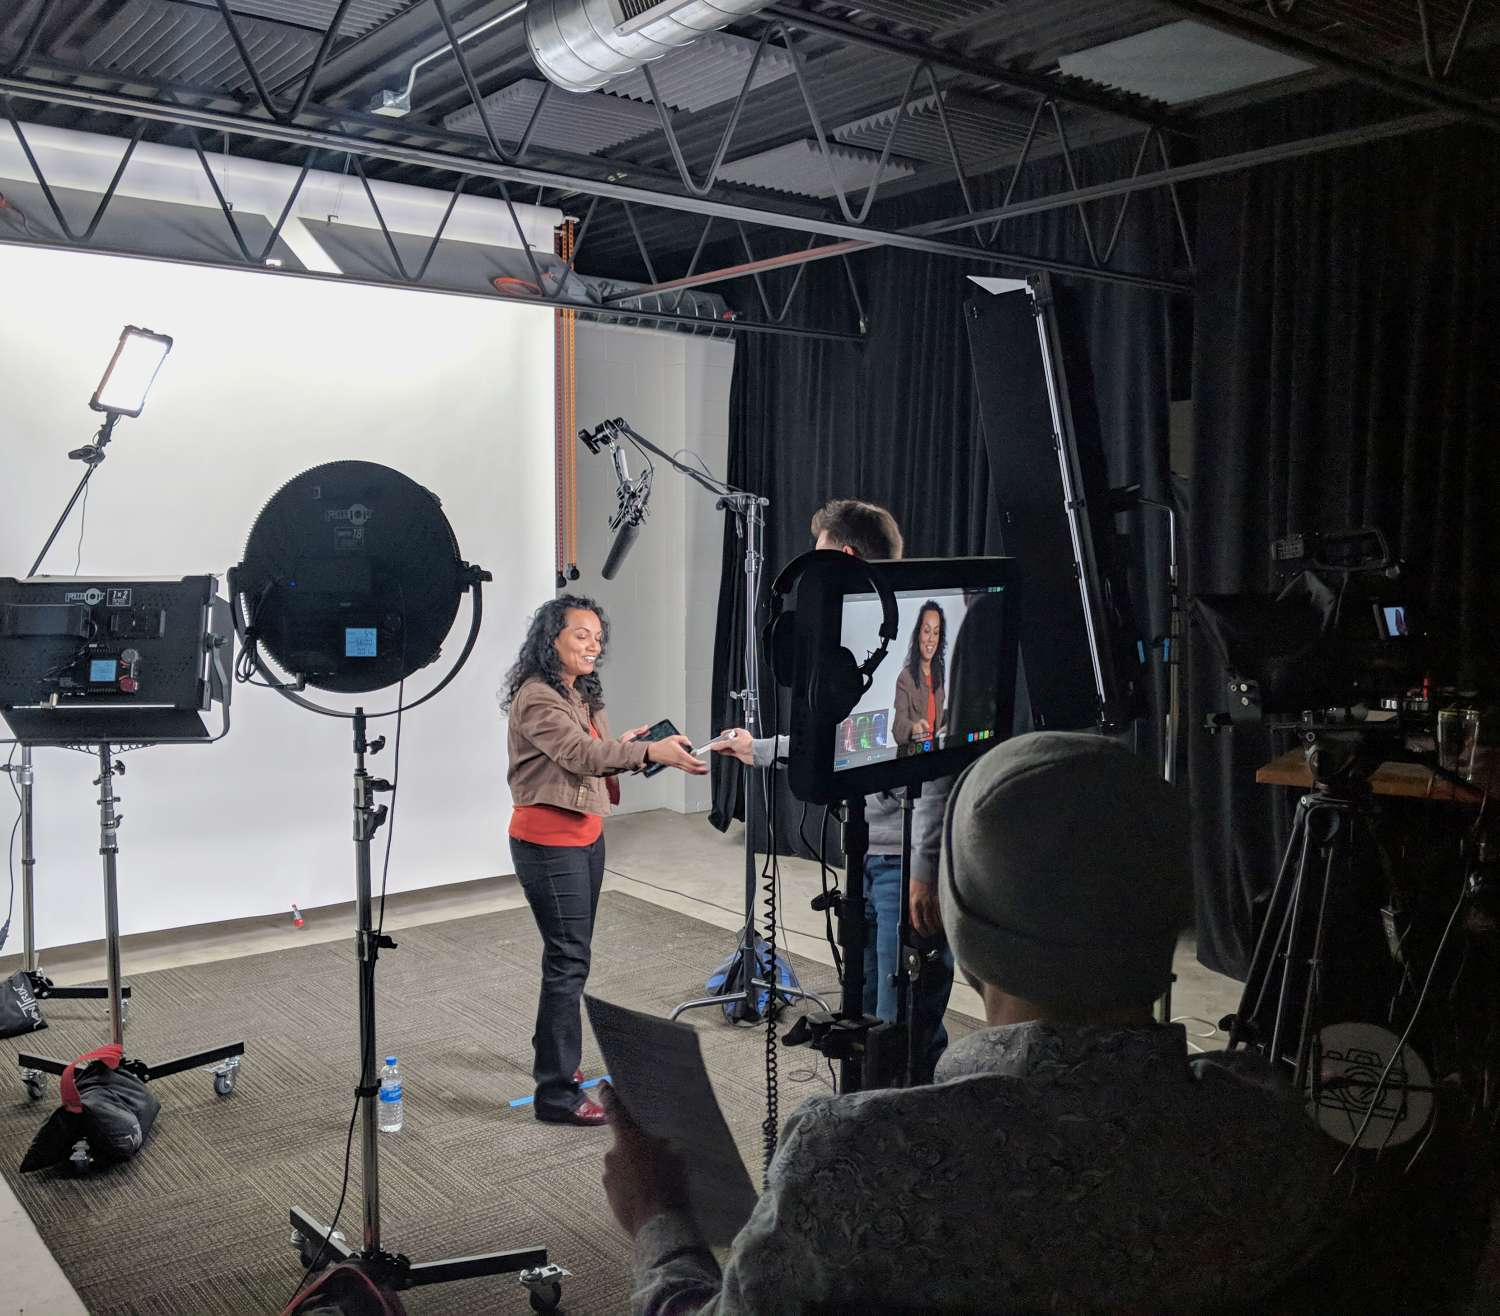 photo / video studio - Because stock footage just won't do. Our studio is great for product photography, filming a tutorial, or getting the perfect portrait. Members of The Keep receive a discount on booking.